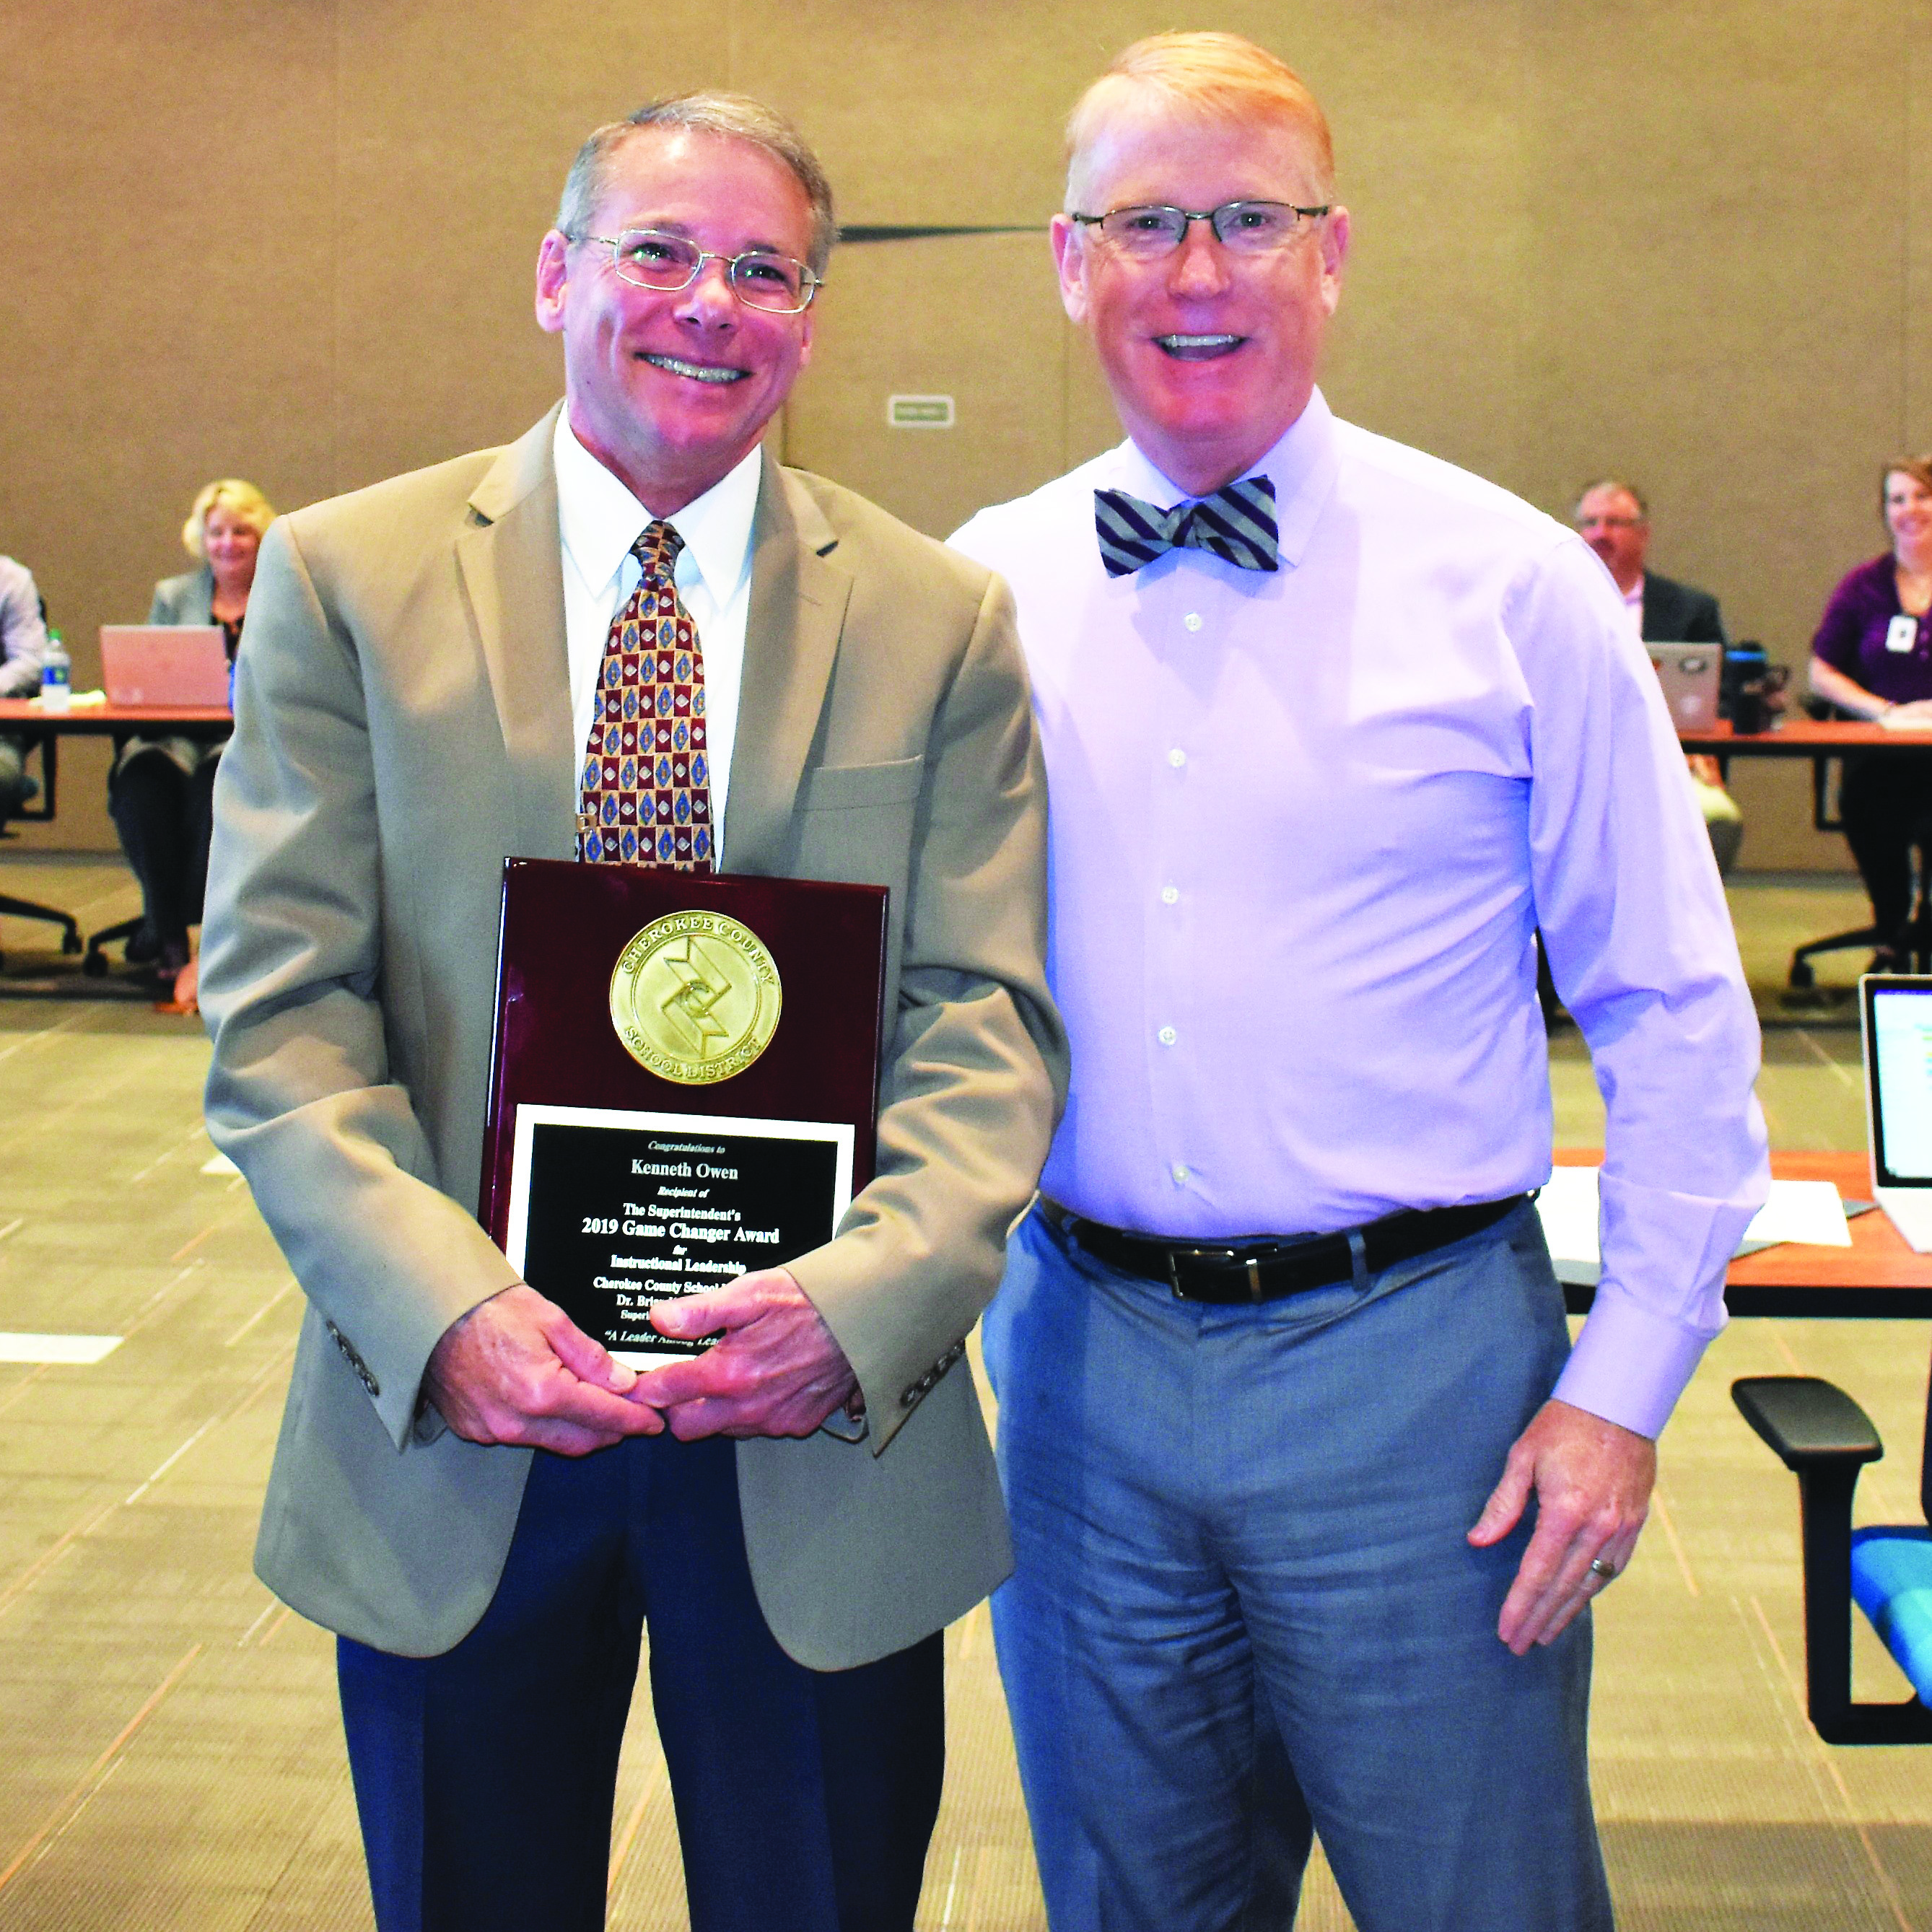 CCSD Chief Financial Officer Kenneth Owen, right, is congratulated by Superintendent of Schools Dr. Brian V. Hightower as the recipient of his 2019 Game Changer Award for Instructional Leadership.